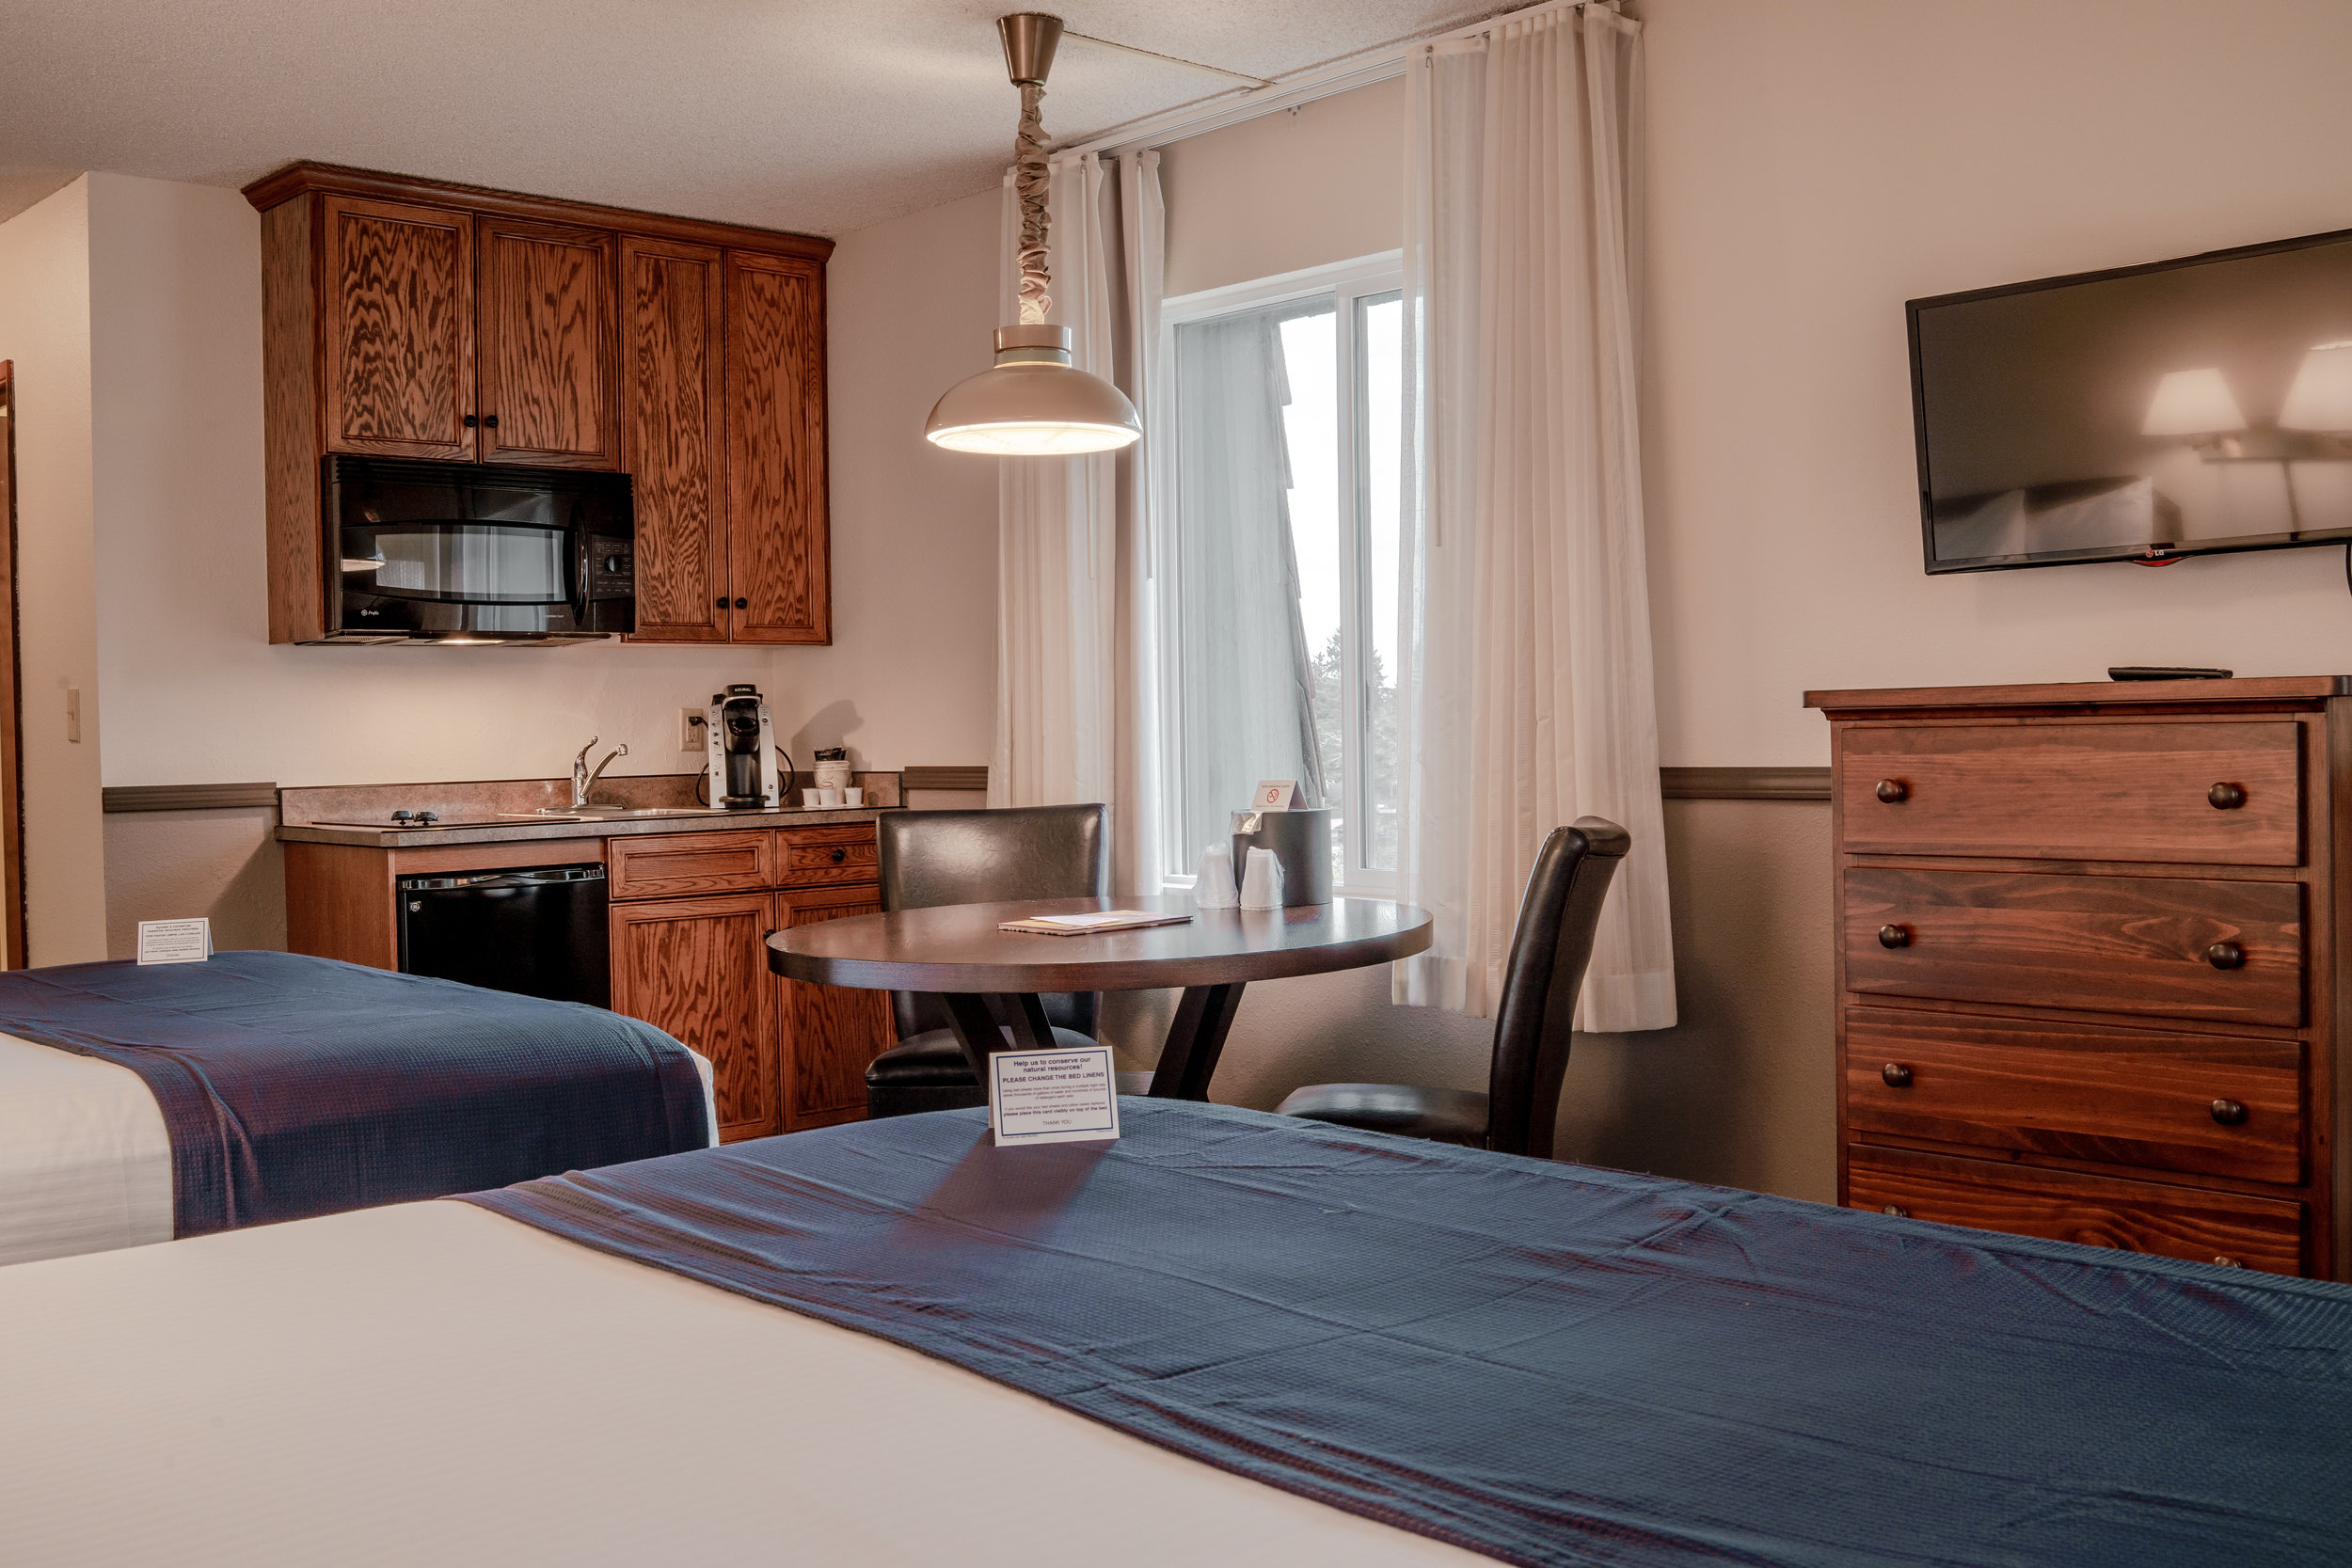 Kitchenette Rooms - Our kitchenettes rooms are fully stocked with all the cookware & utensils you will need during your stay. These rooms are equipped with a convection microwave, 2 burner stove top, mini fridge, sink and a Keurig coffee maker.